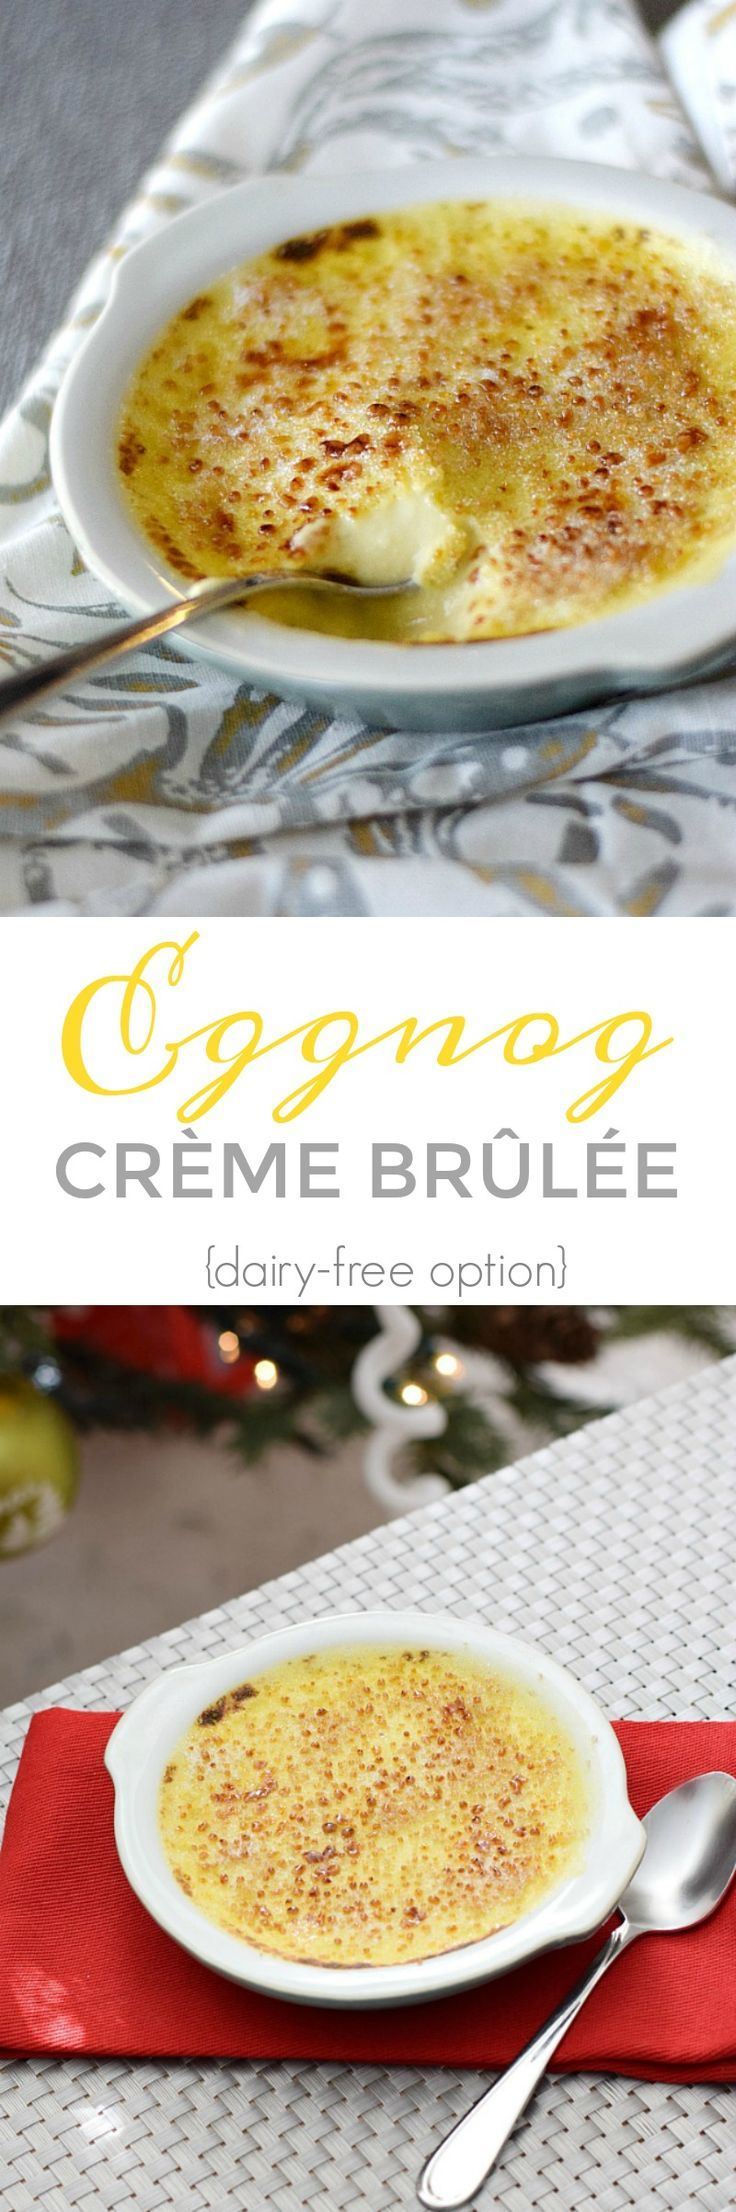 This rich and creamy Eggnog Creme Brulee is the perfect dessert during the holidays, and so much easier to make than you would expect. {with dairy-free option} | cookingwithcurls.com